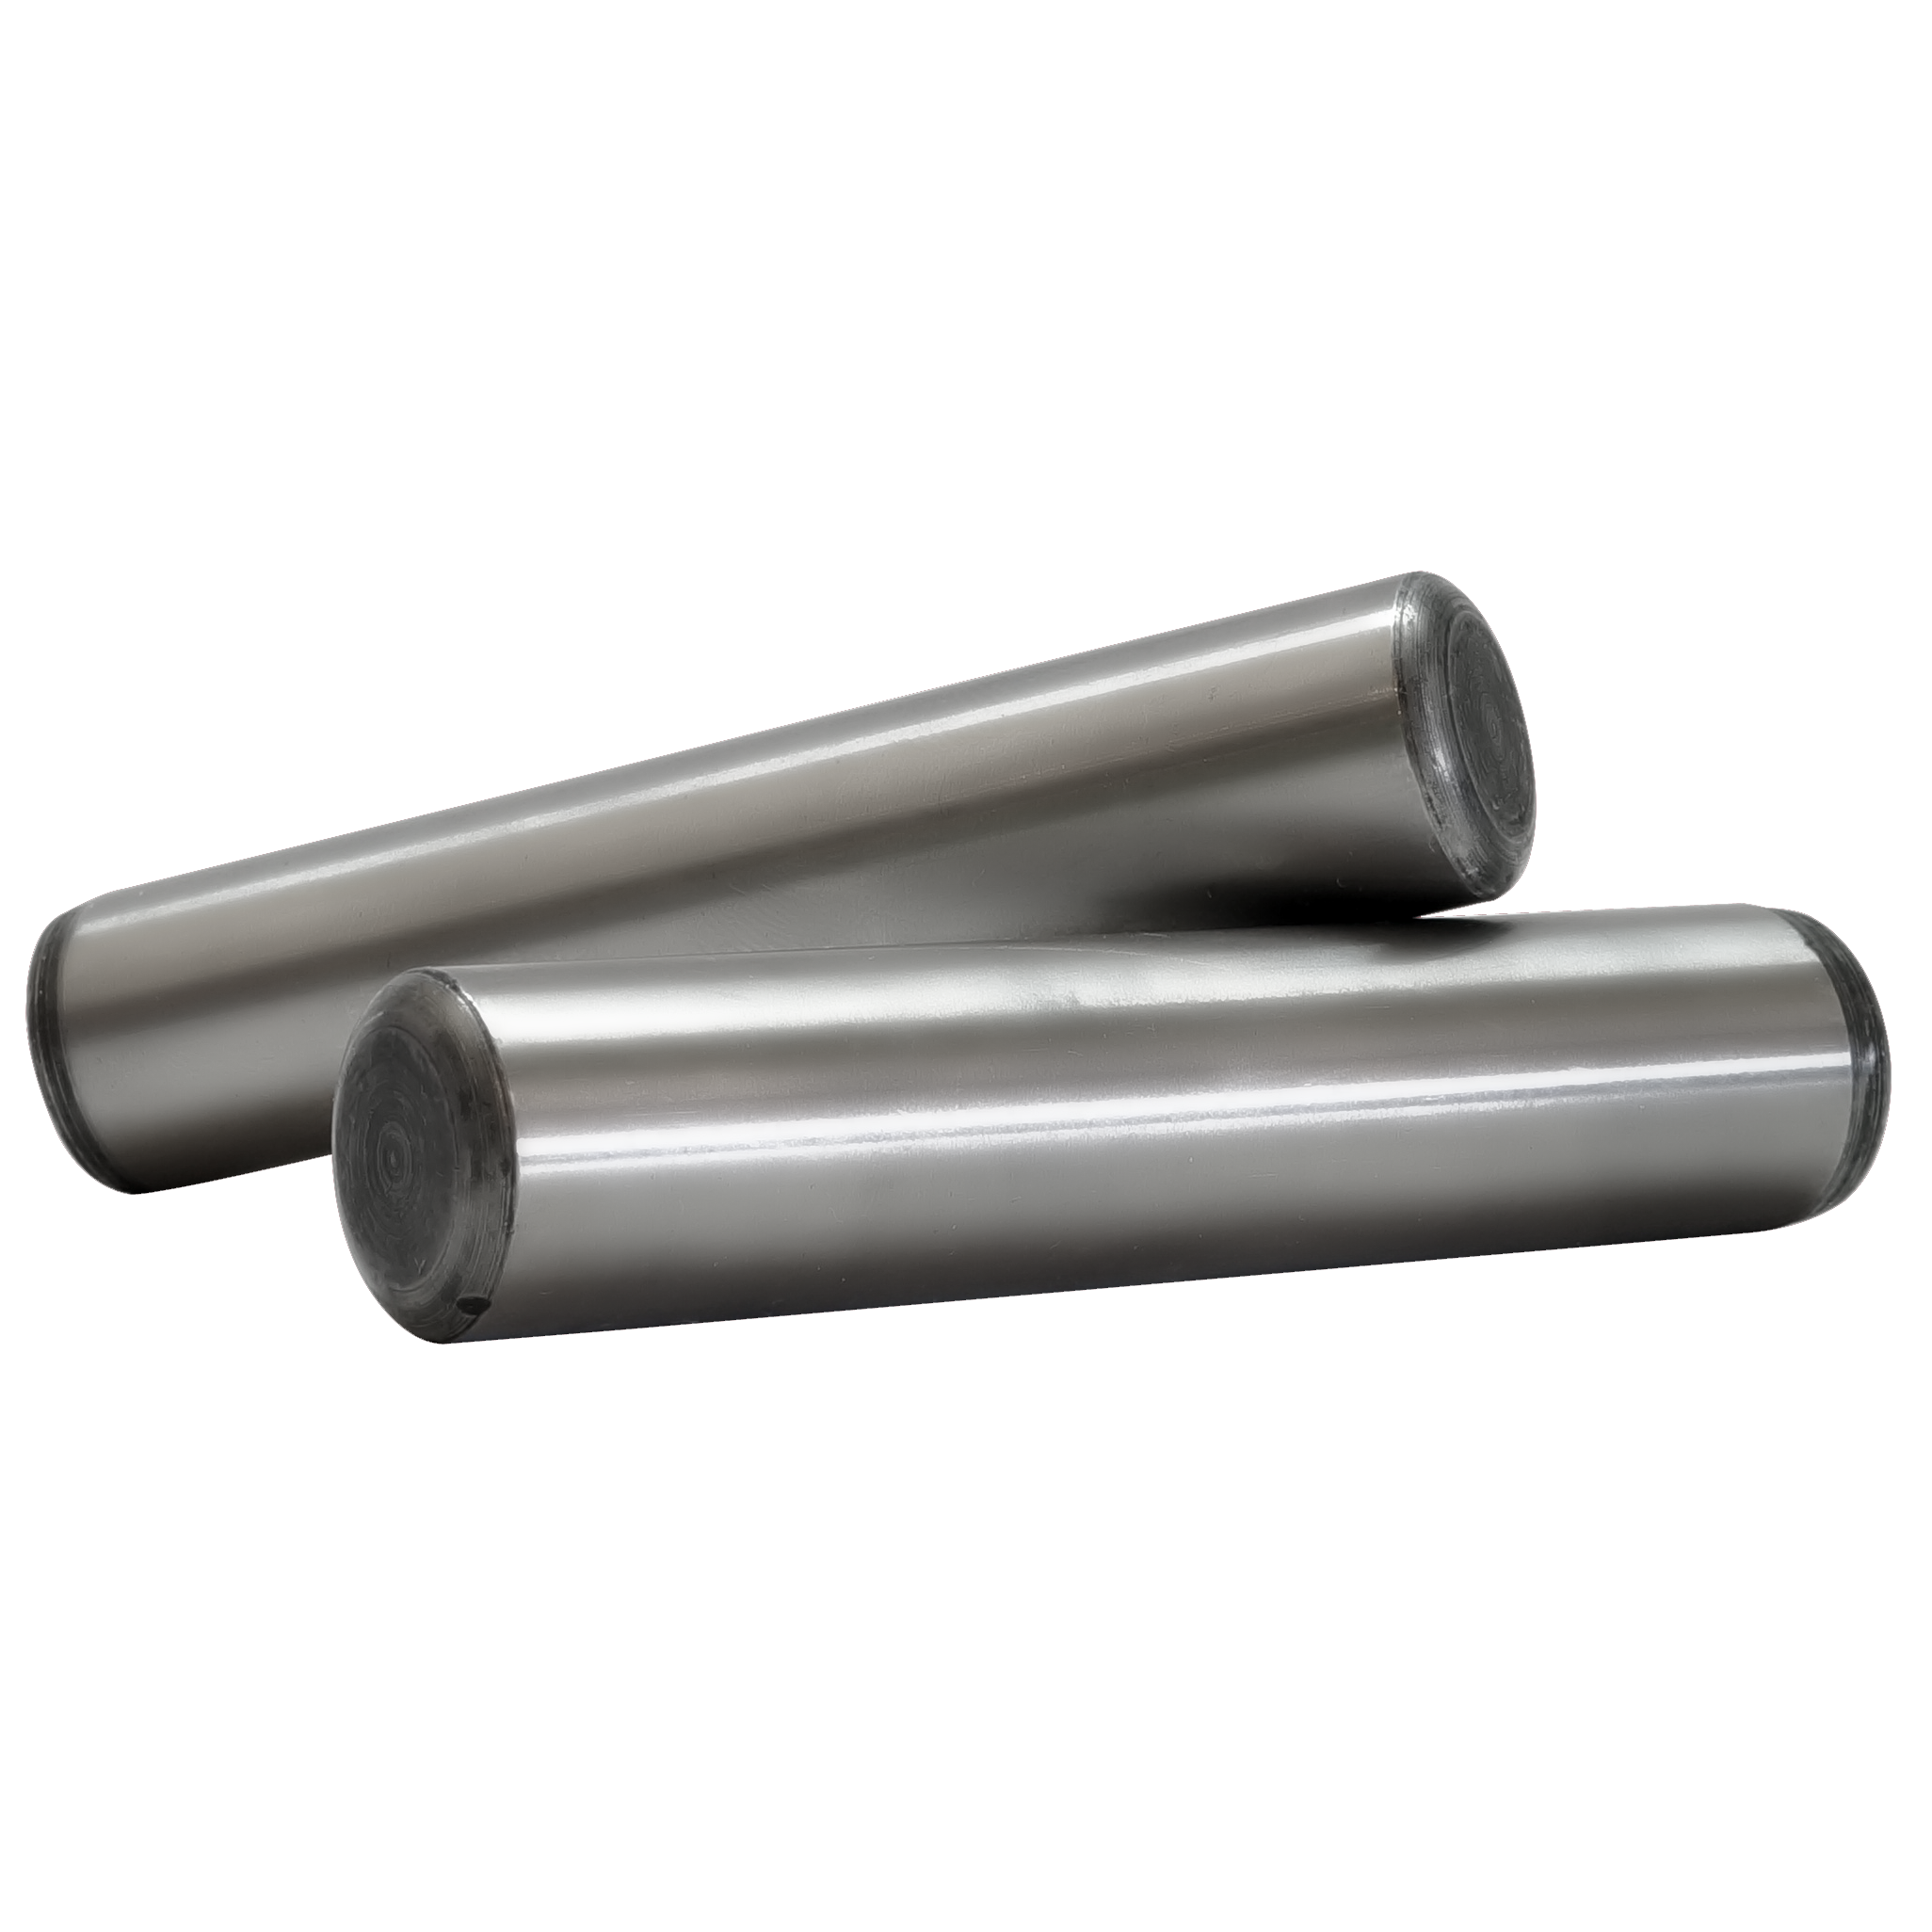 "5/16x3 ASME B18.8.2 Alloy Steel Dowel Pin Hardened Ground 0.0002"" Over Sized  (Unbrako)"